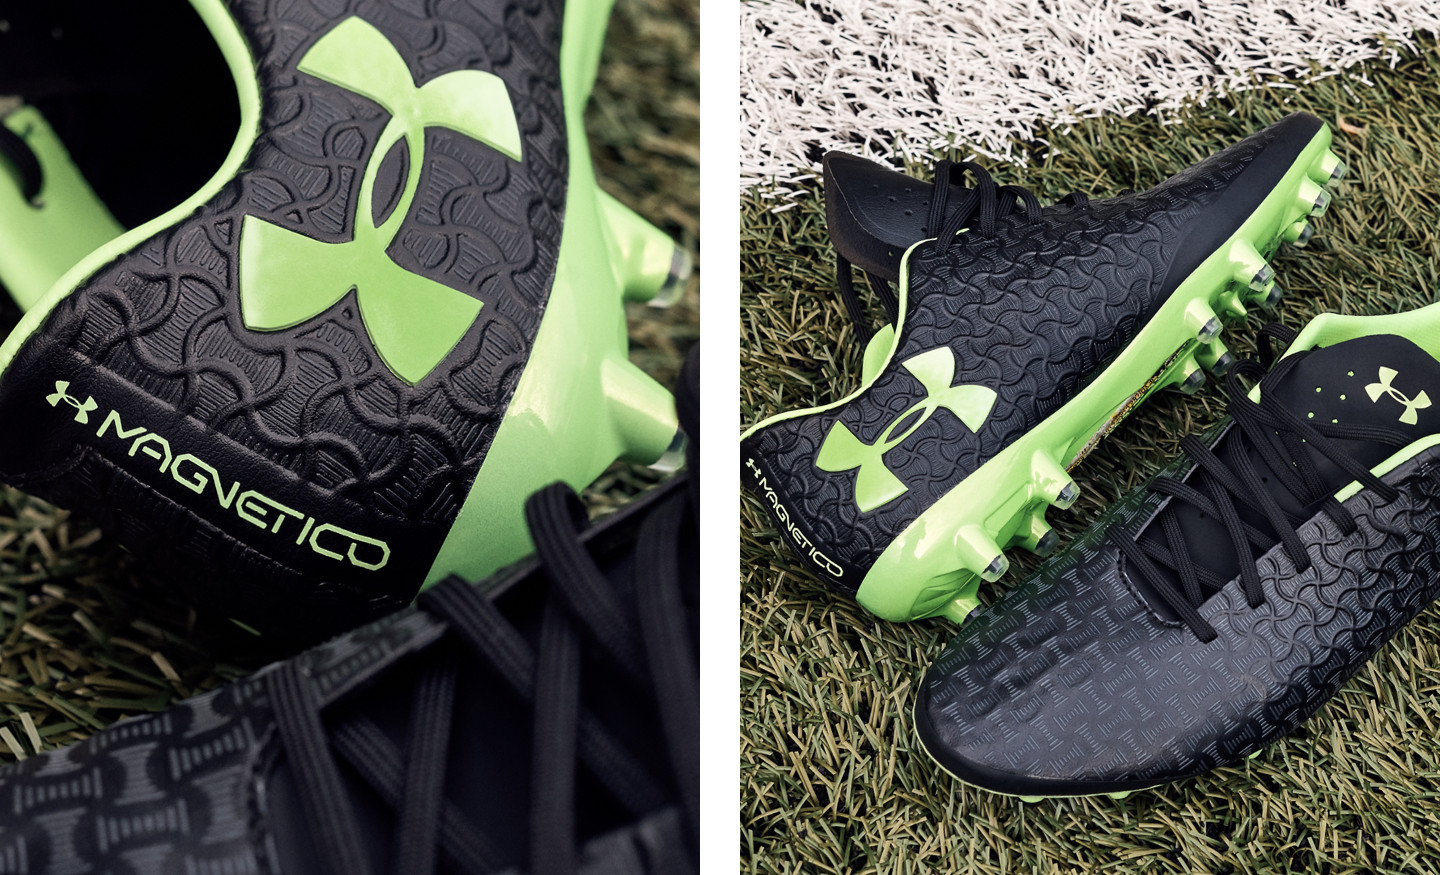 Under Armour Magnetico Pro FG